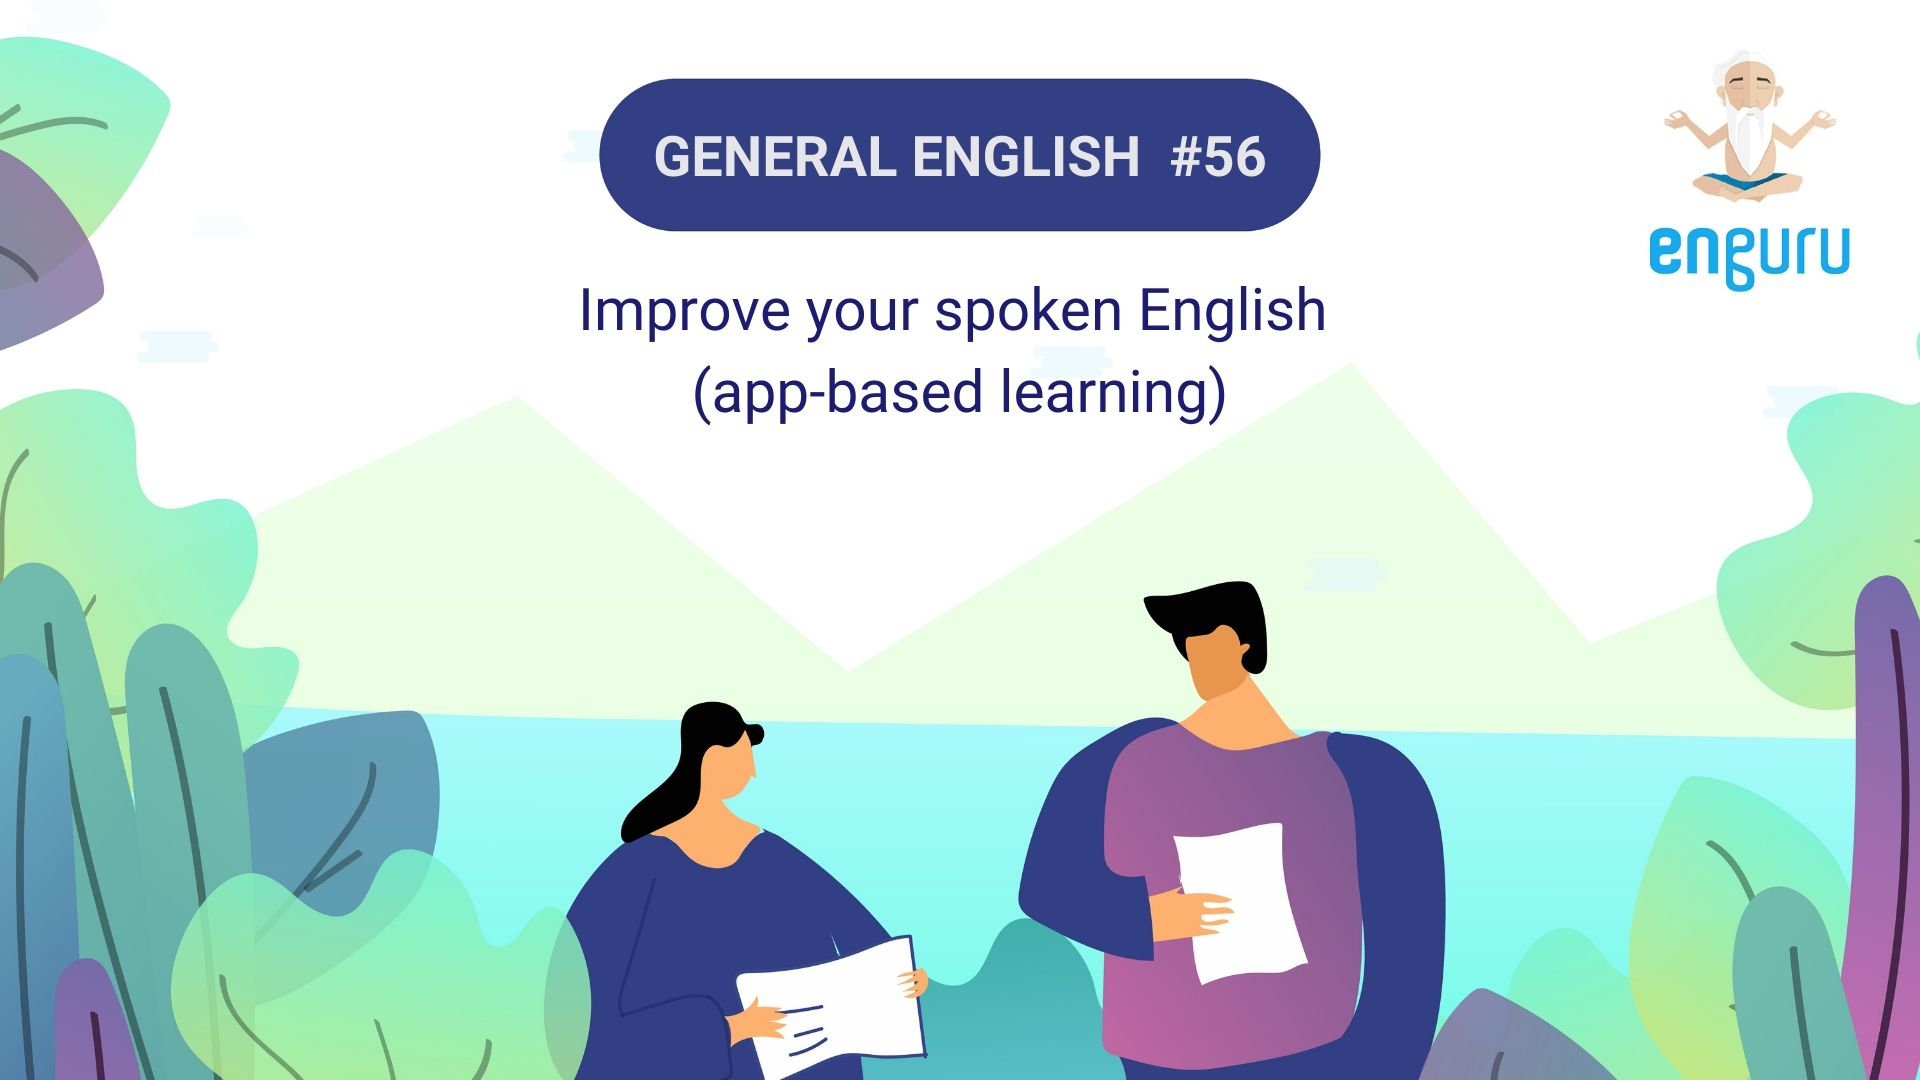 Improve your spoken English (app-based learning)